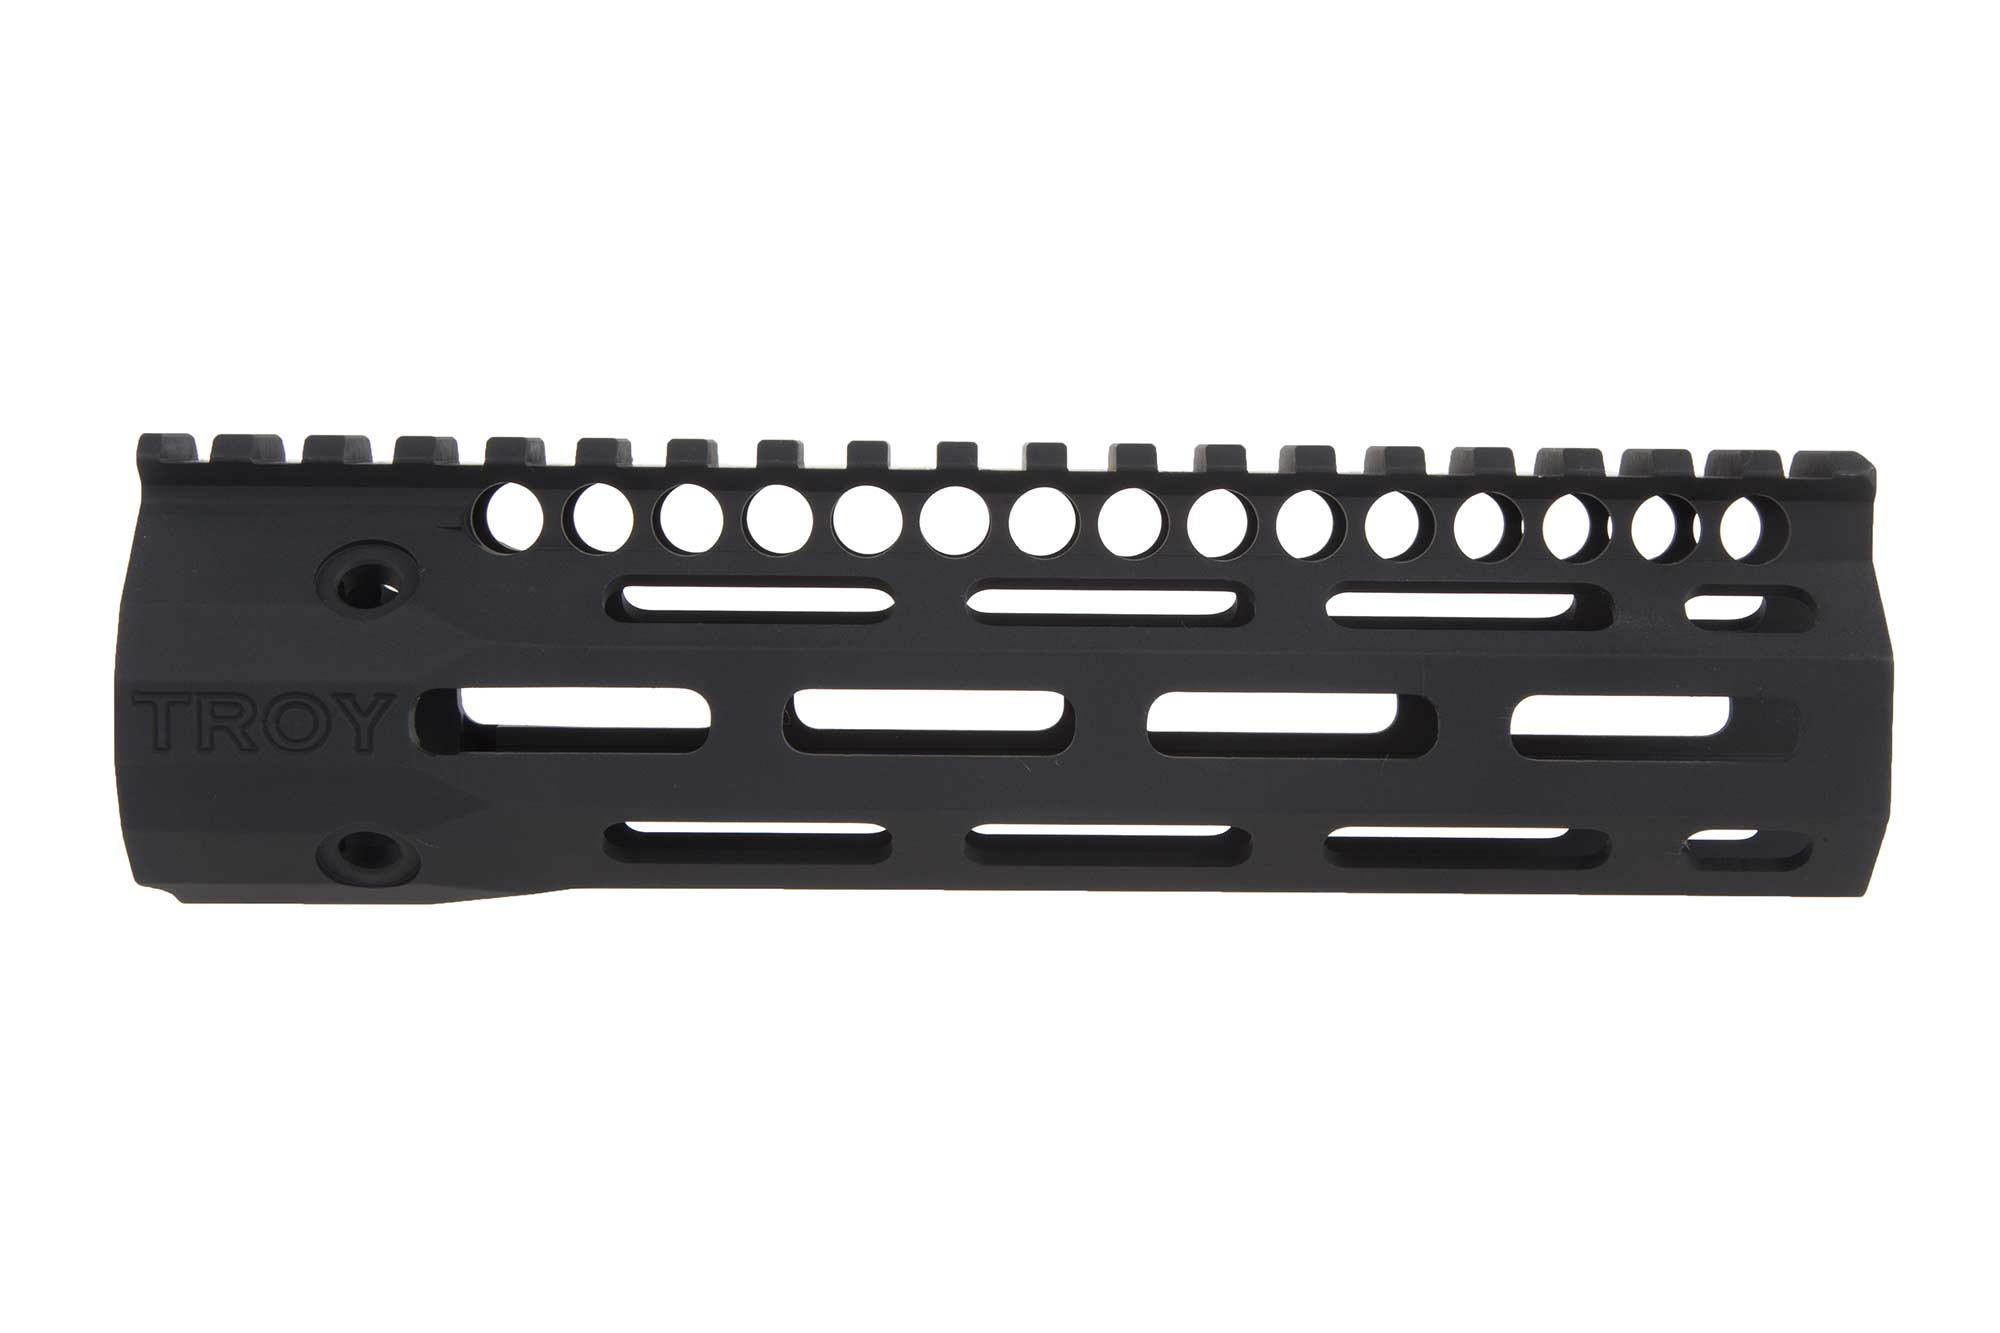 Troy Industries 7.6 SOCC-PDW BattleRail - Black